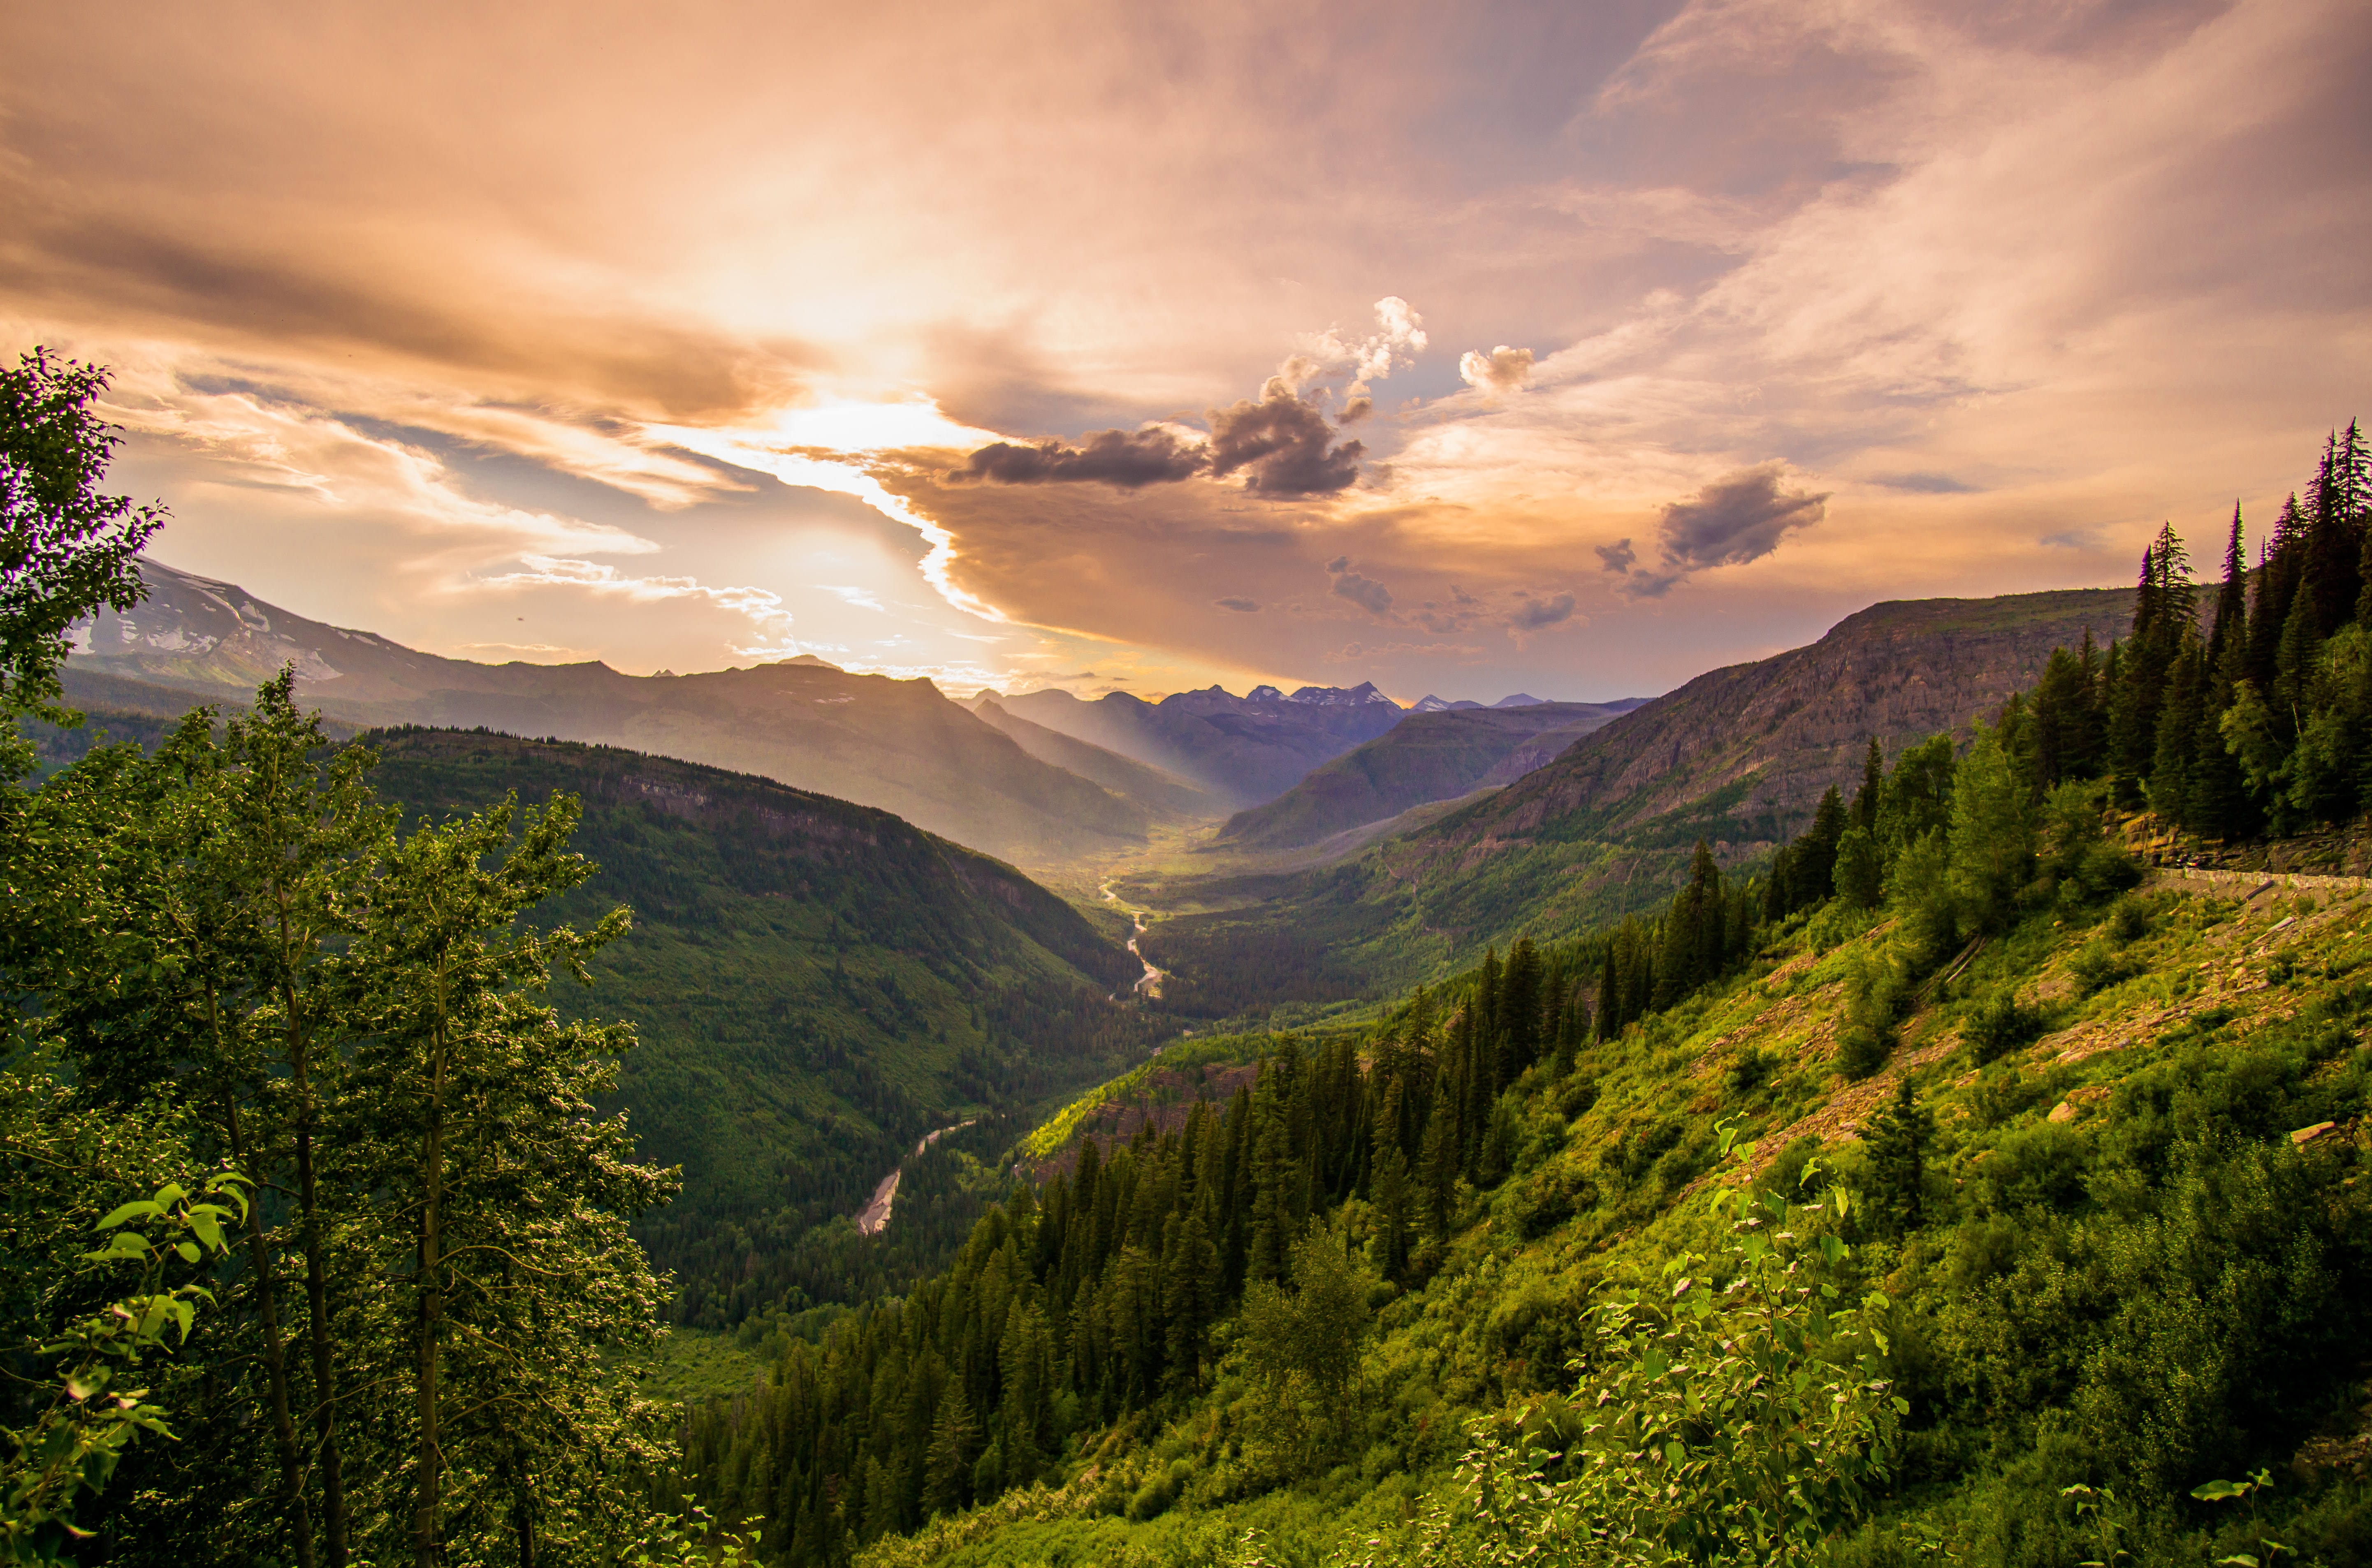 A magnificent scenery with a river in a shallow valley during golden hour